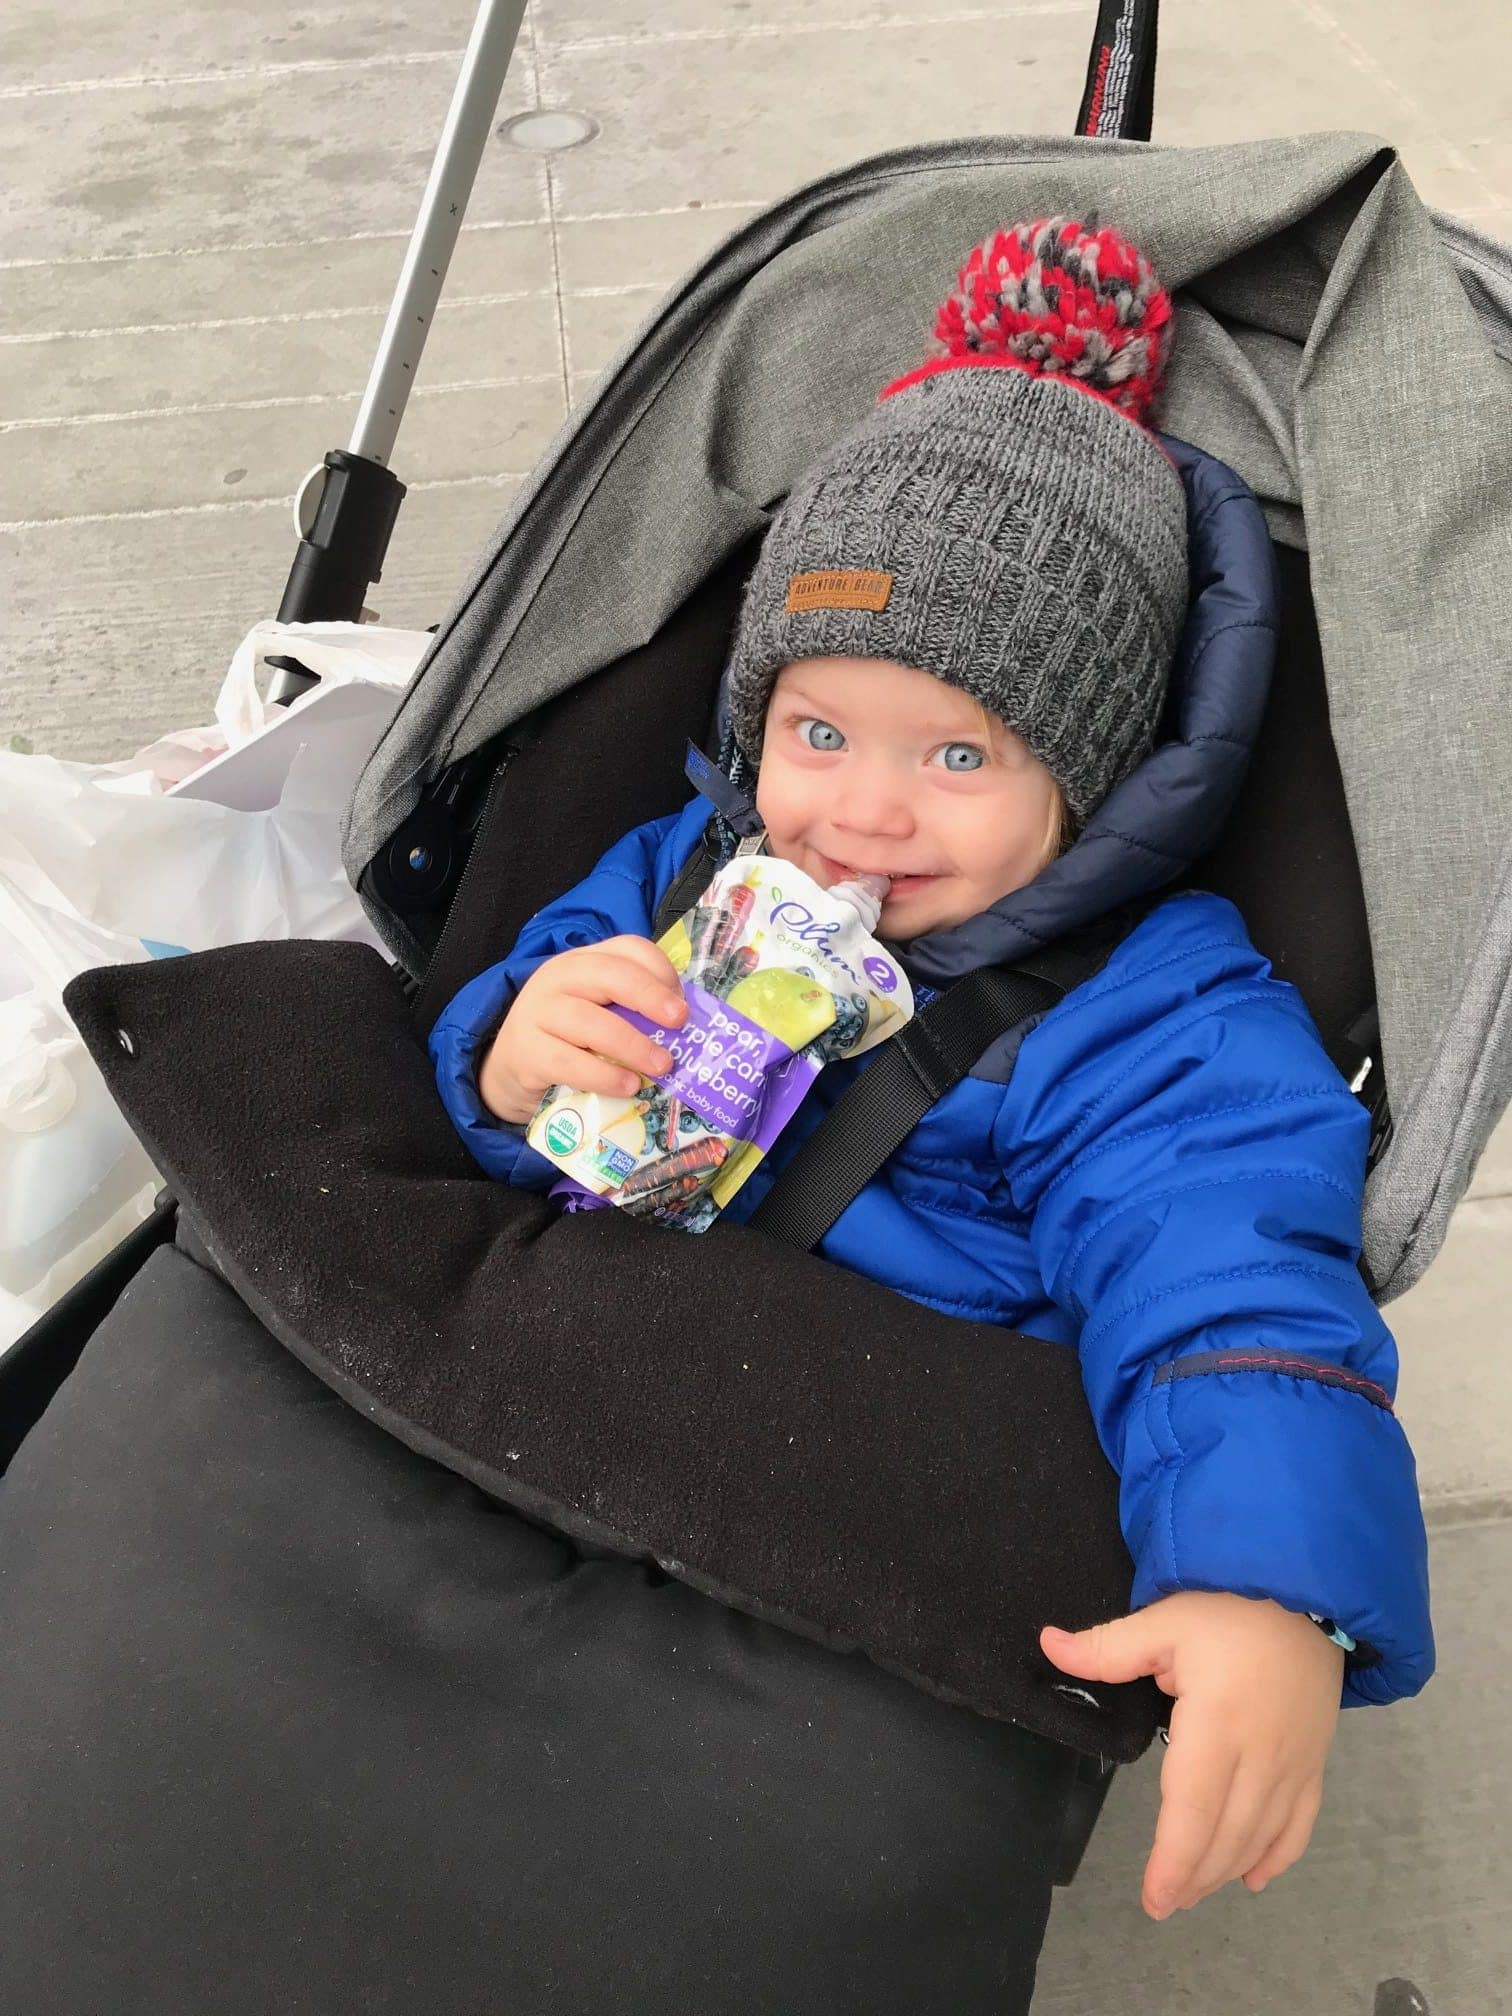 Eddie in the stroller with a snack